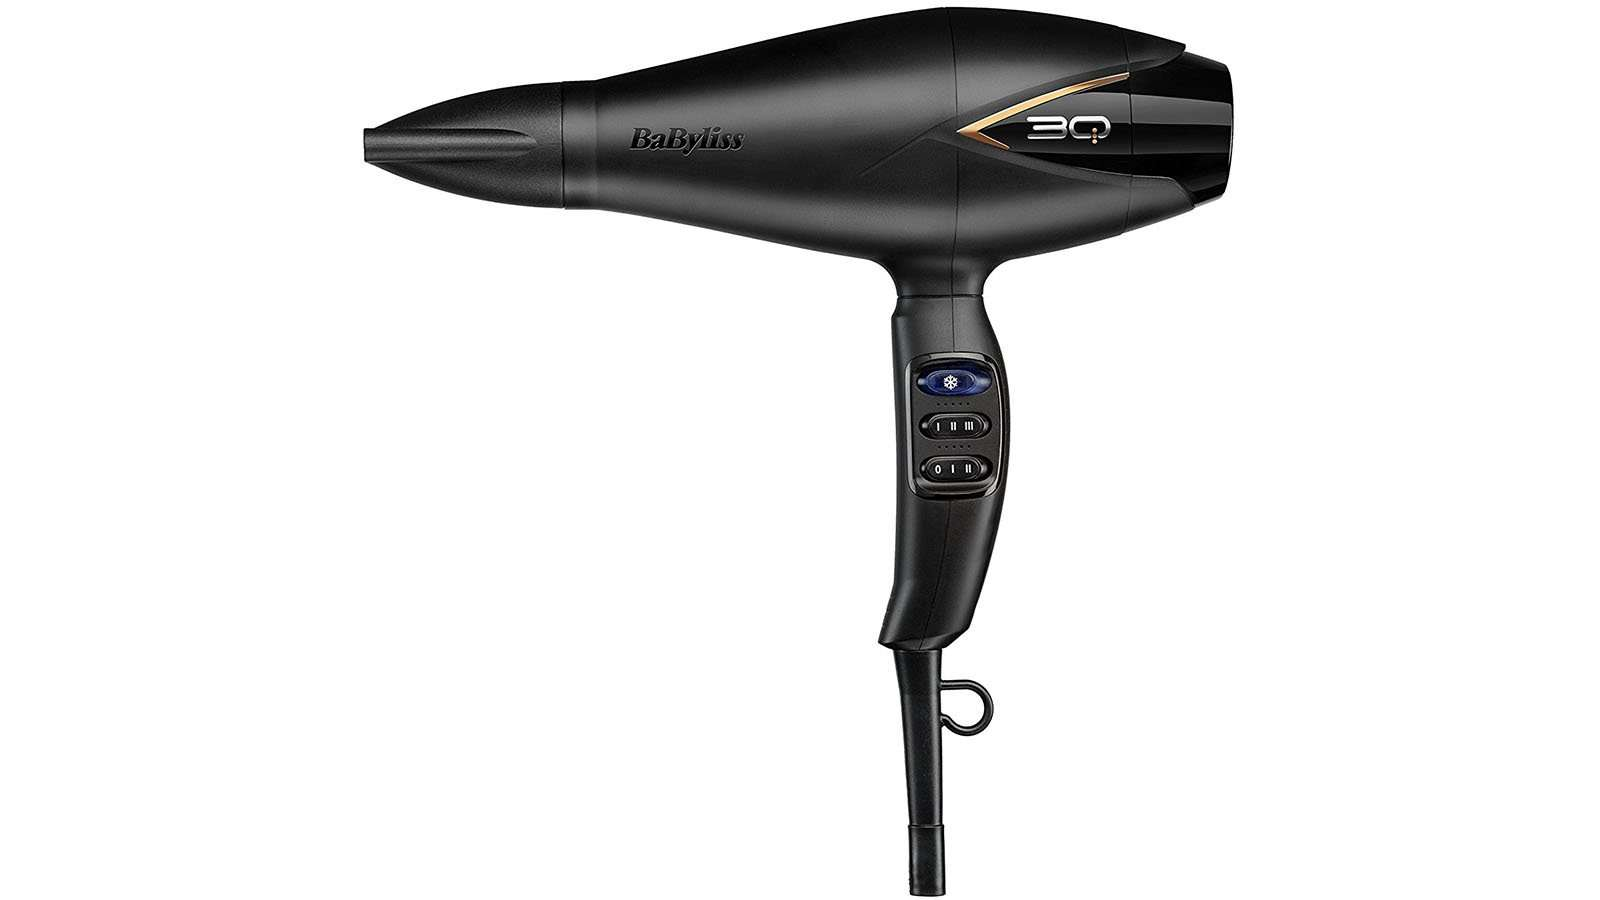 Babyliss 3Q review